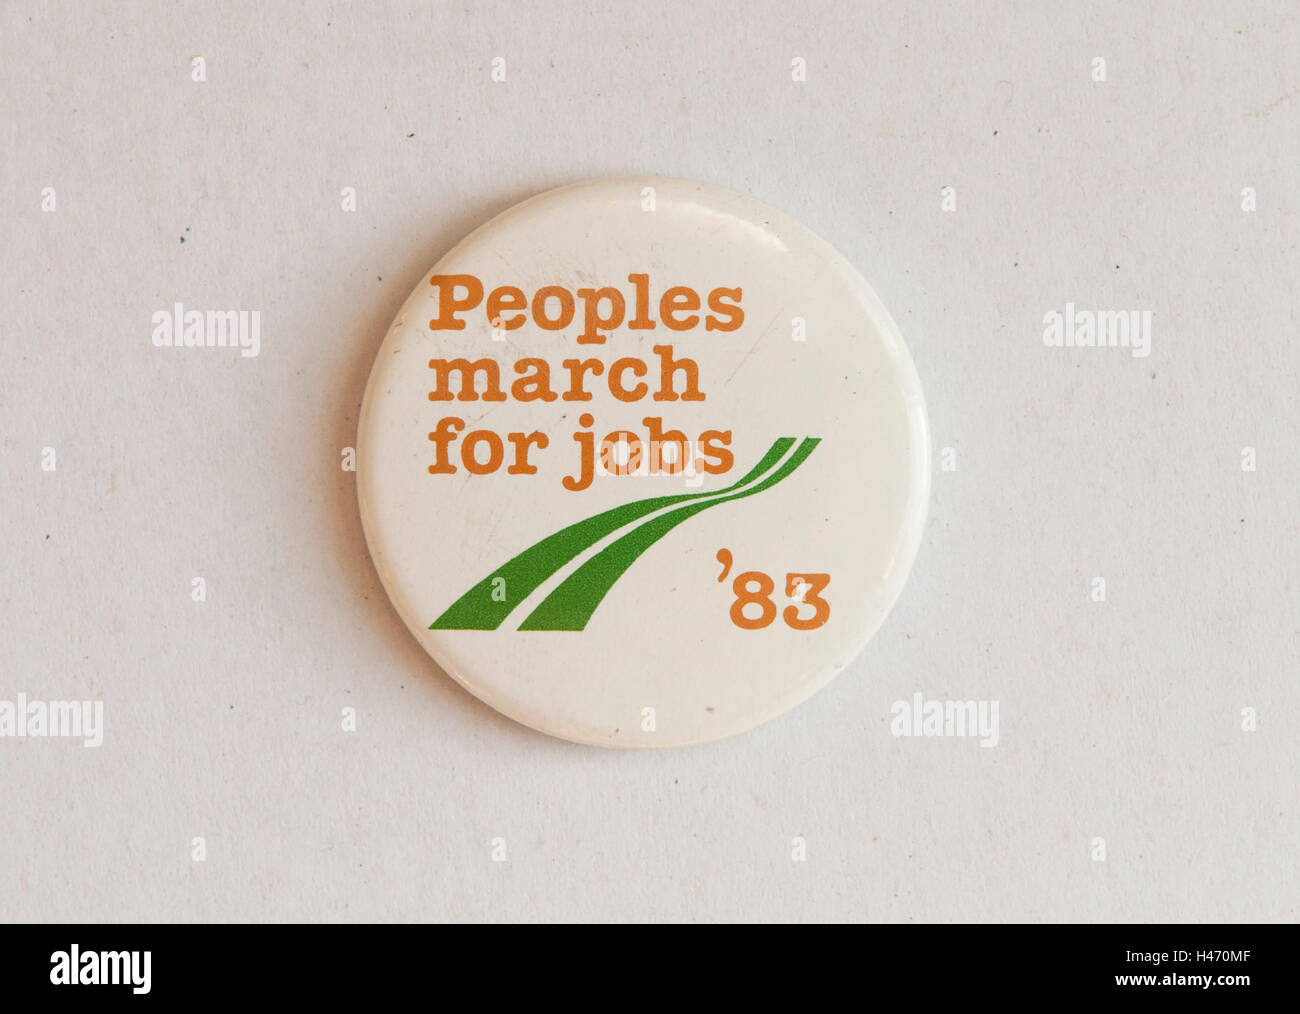 Peoples March for Jobs, pin badge use 1983 HOMER SYKES - Stock Image